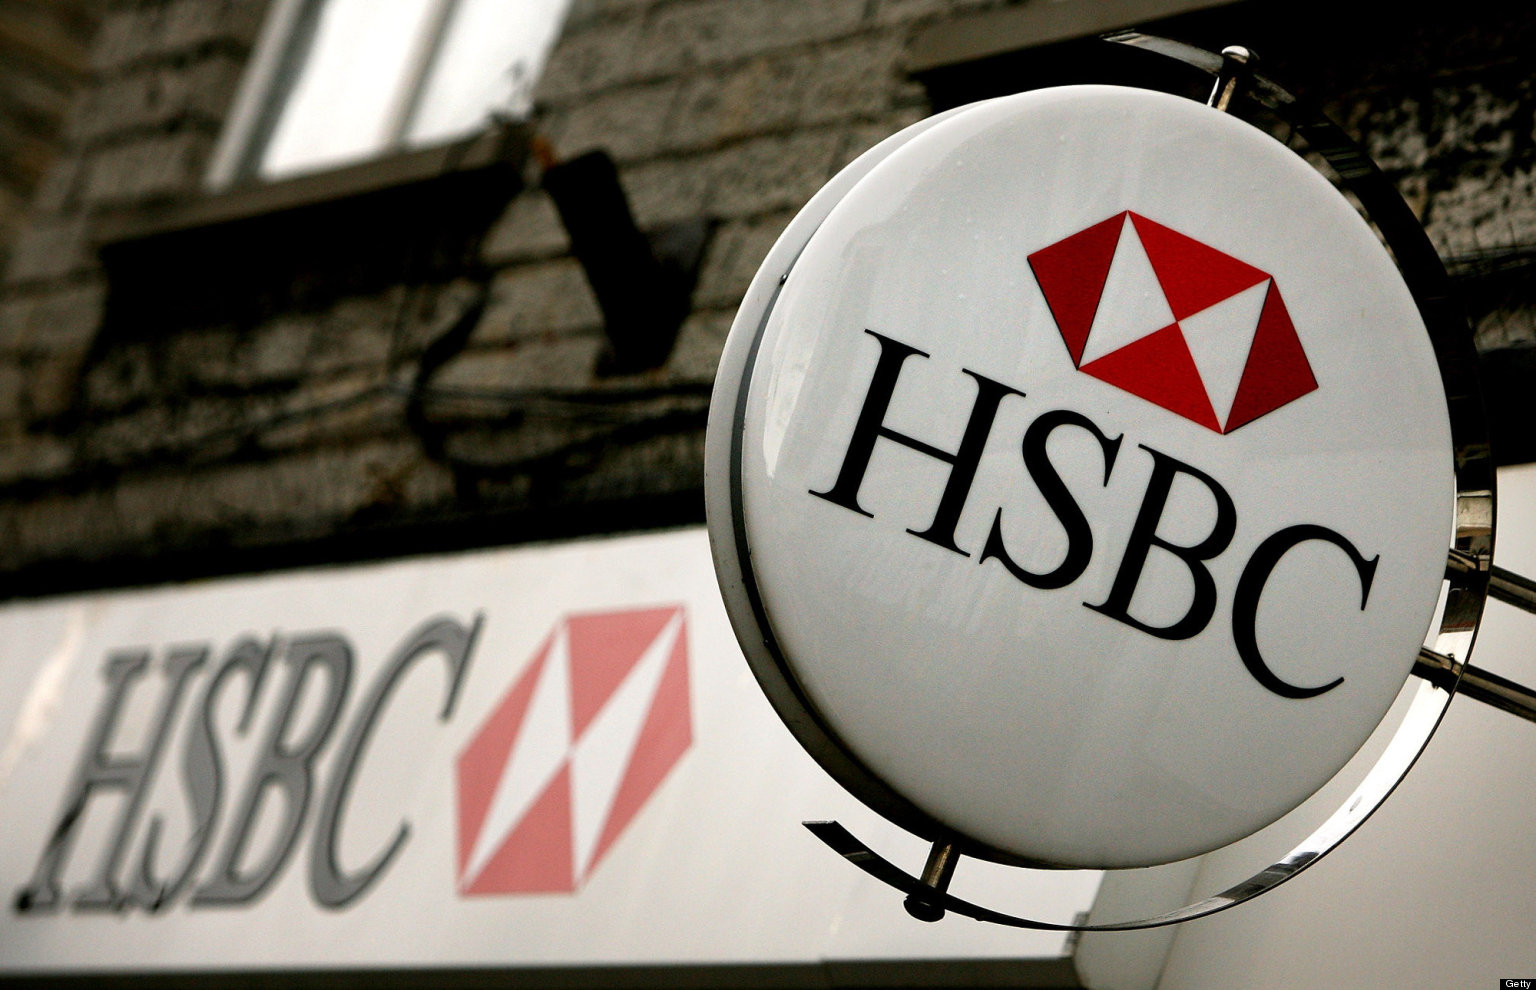 Shrem and HSBC: A tale of two money-laundering cases